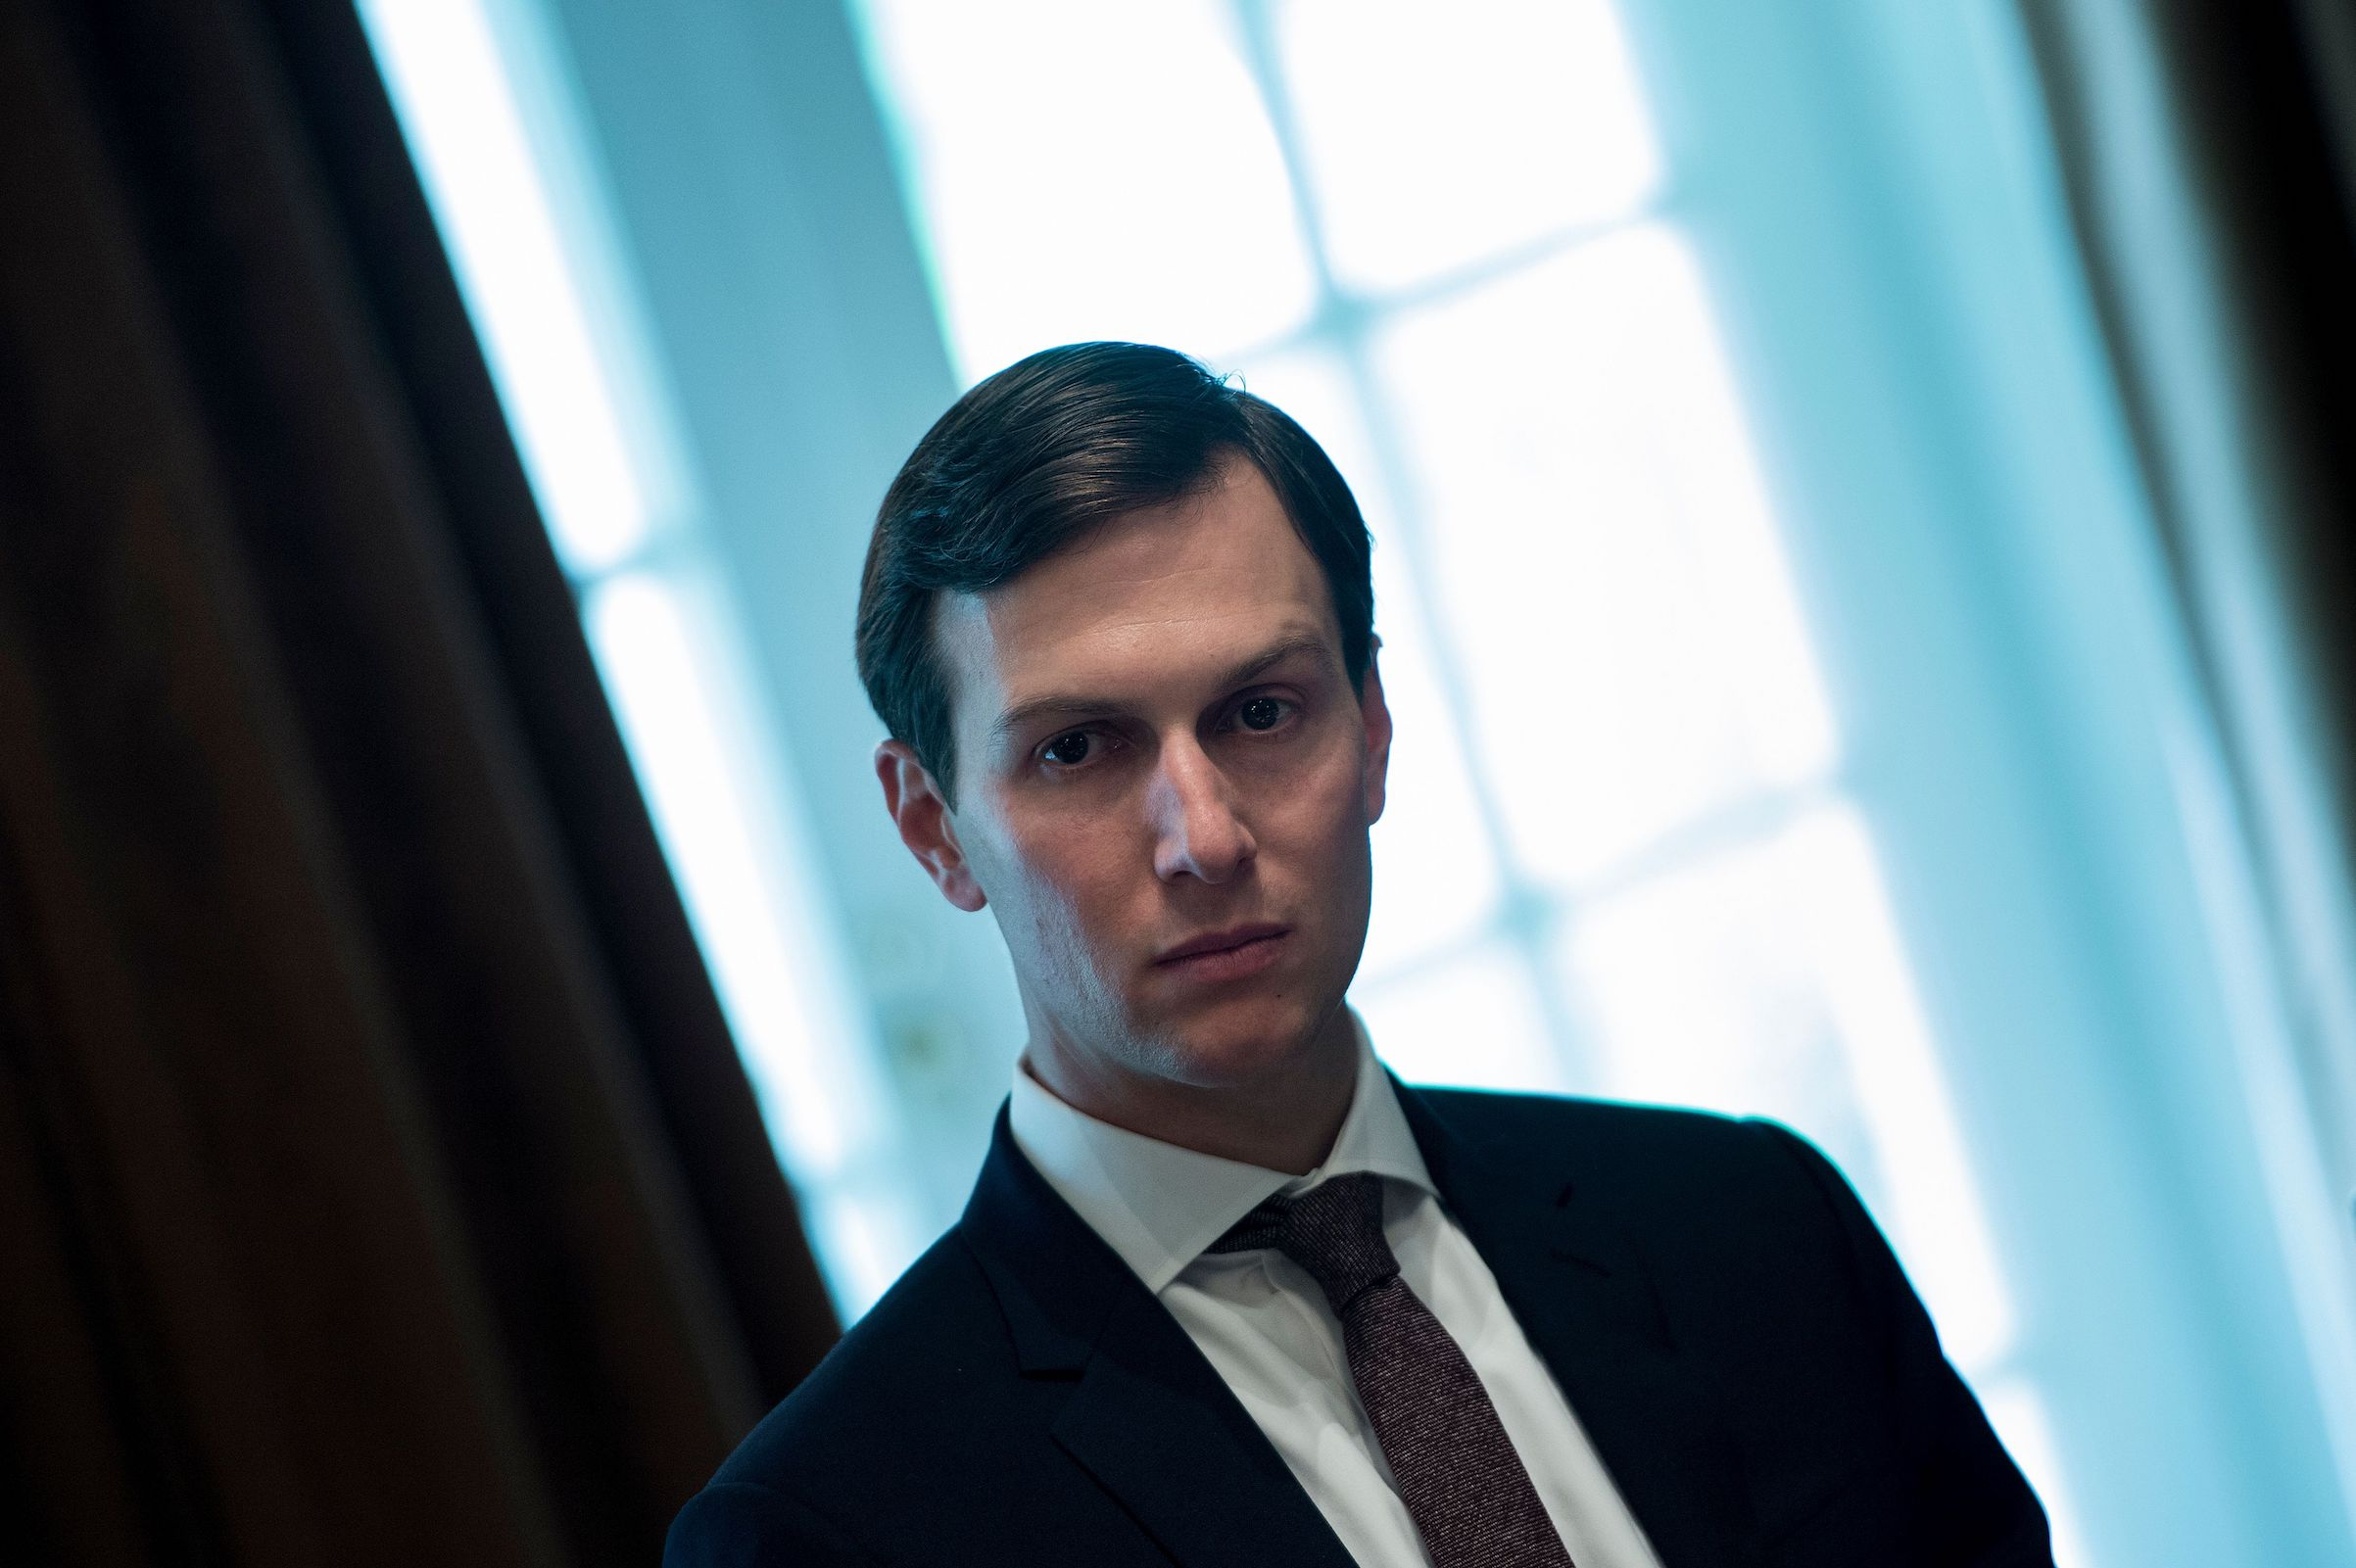 Senior Advisor Jared Kushner waits for a meeting with Prime Minister of Malaysia Najib Razak, U.S. President Donald Trump and others in the Cabinet Room of the White House Sept. 12, 2017 in Washington, D/C. / AFP PHOTO / Brendan Smialowski        (Photo credit should read BRENDAN SMIALOWSKI/AFP/Getty Images)